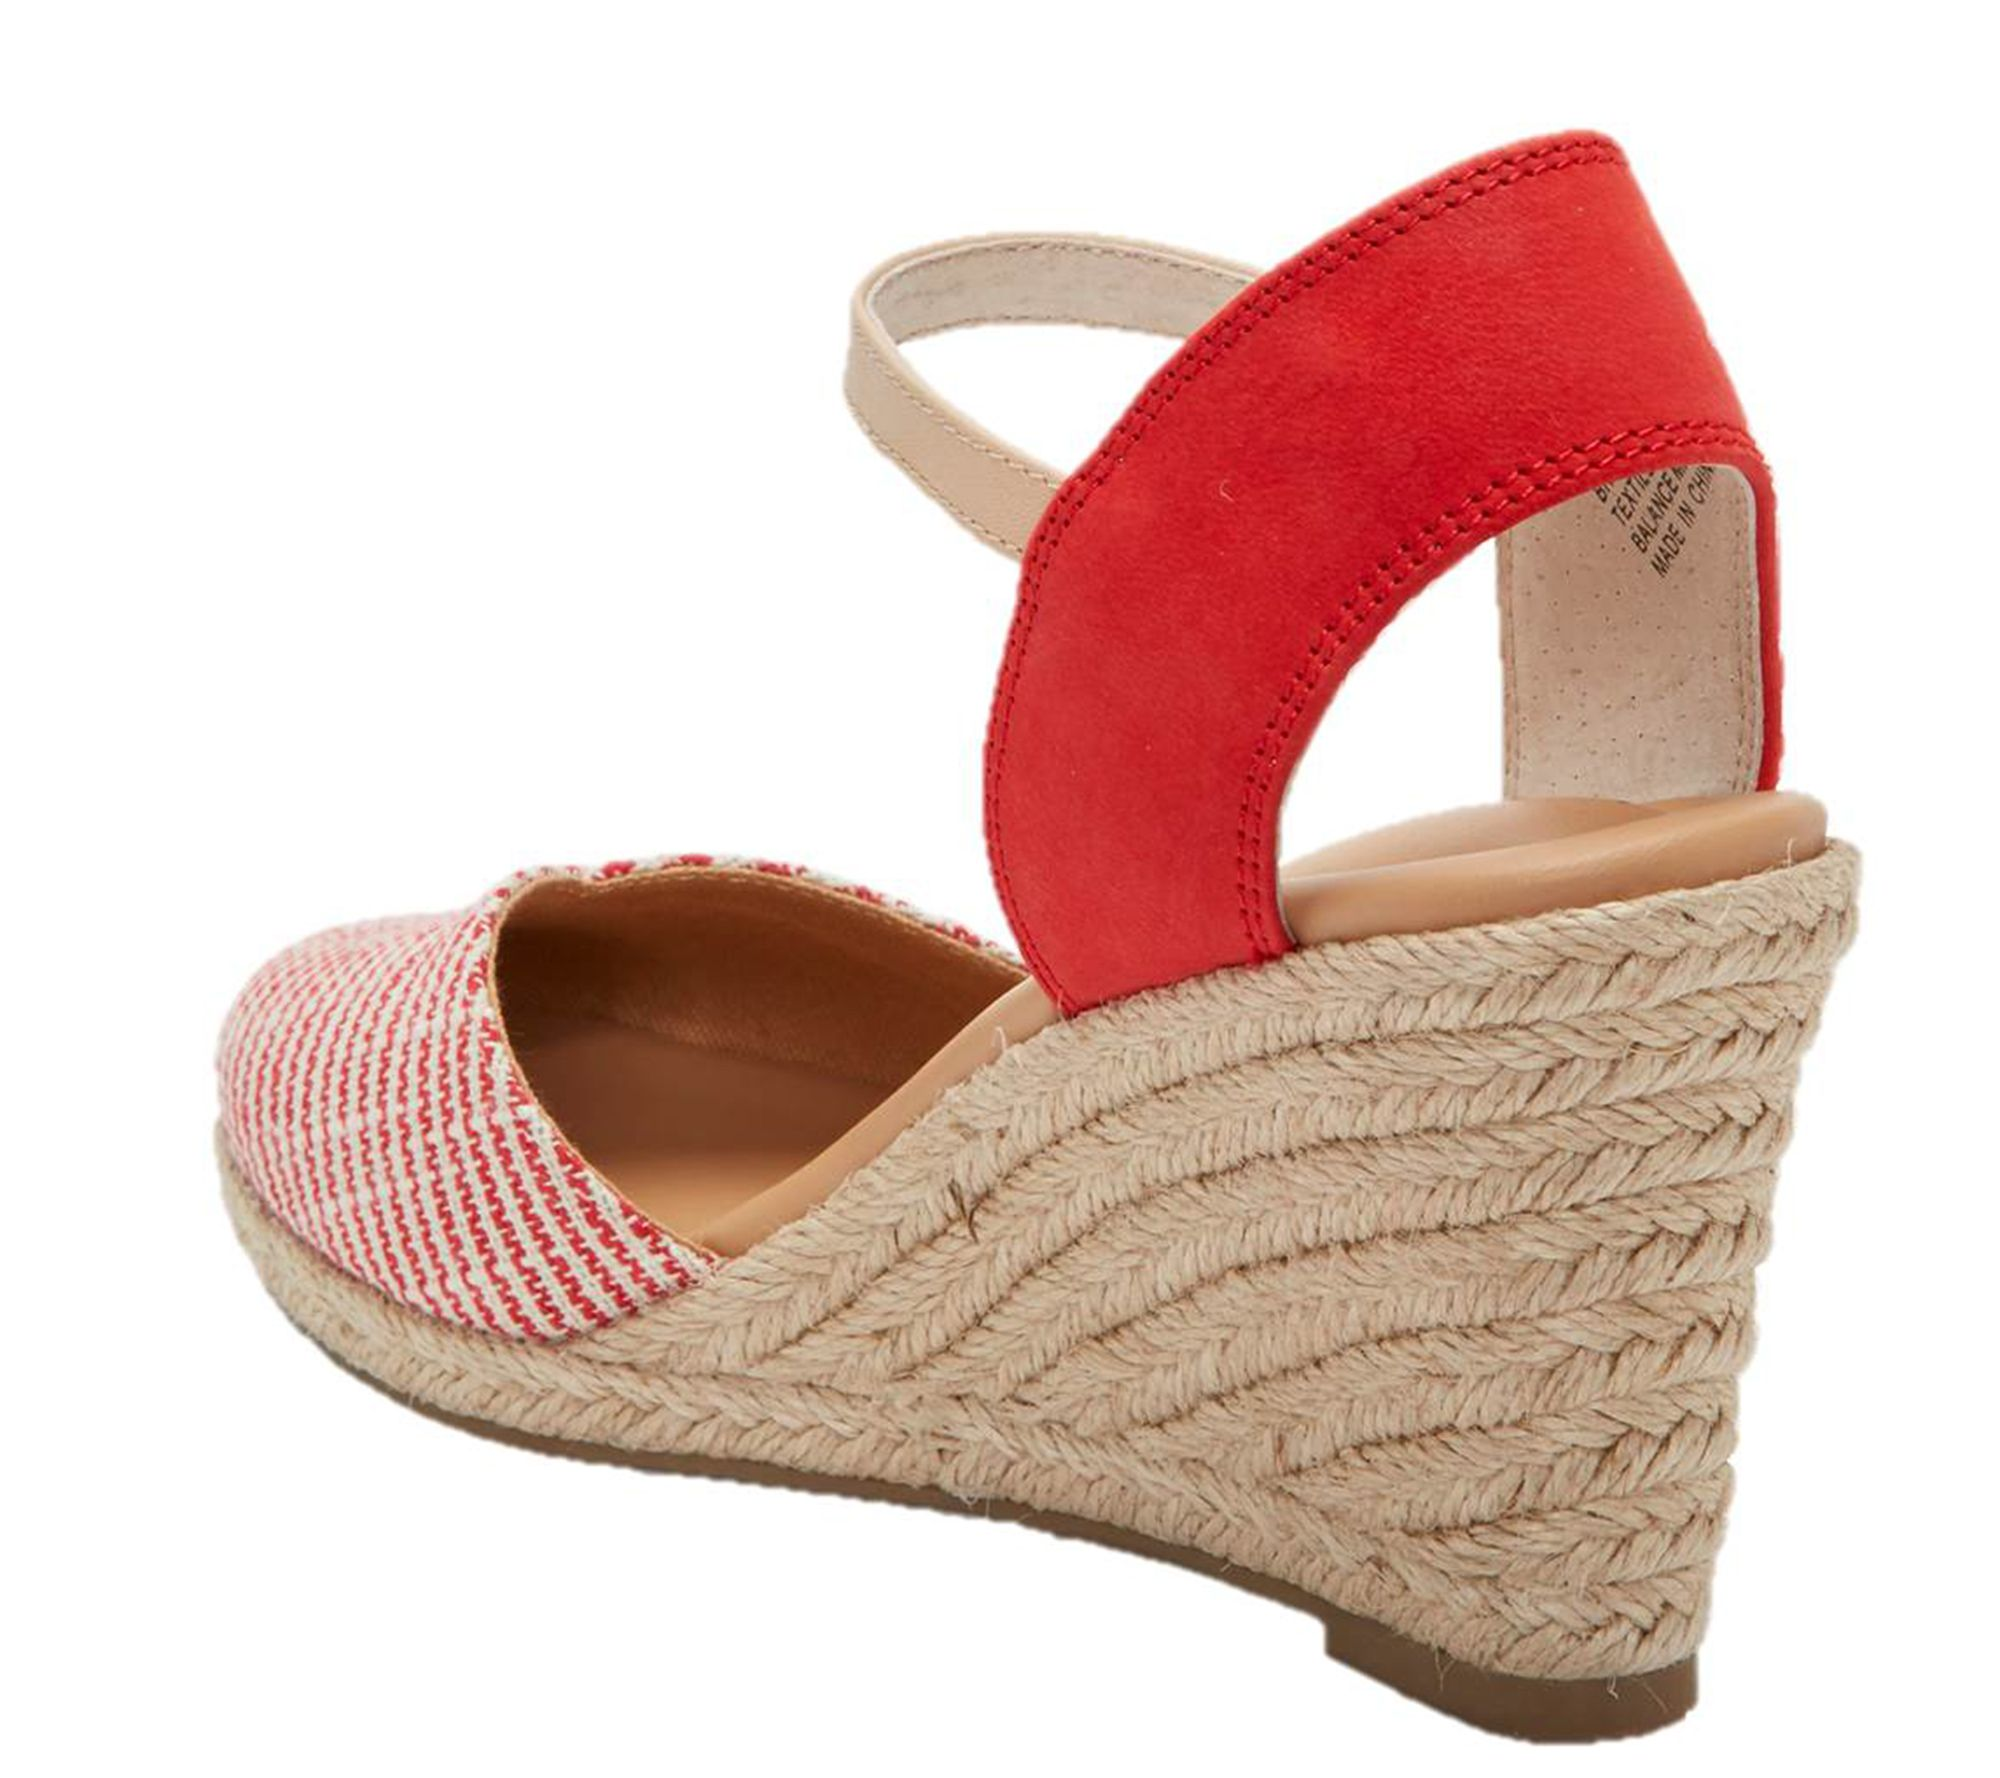 ee1bebf1ea5 Me Too Wedge Sandals - Brenna — QVC.com